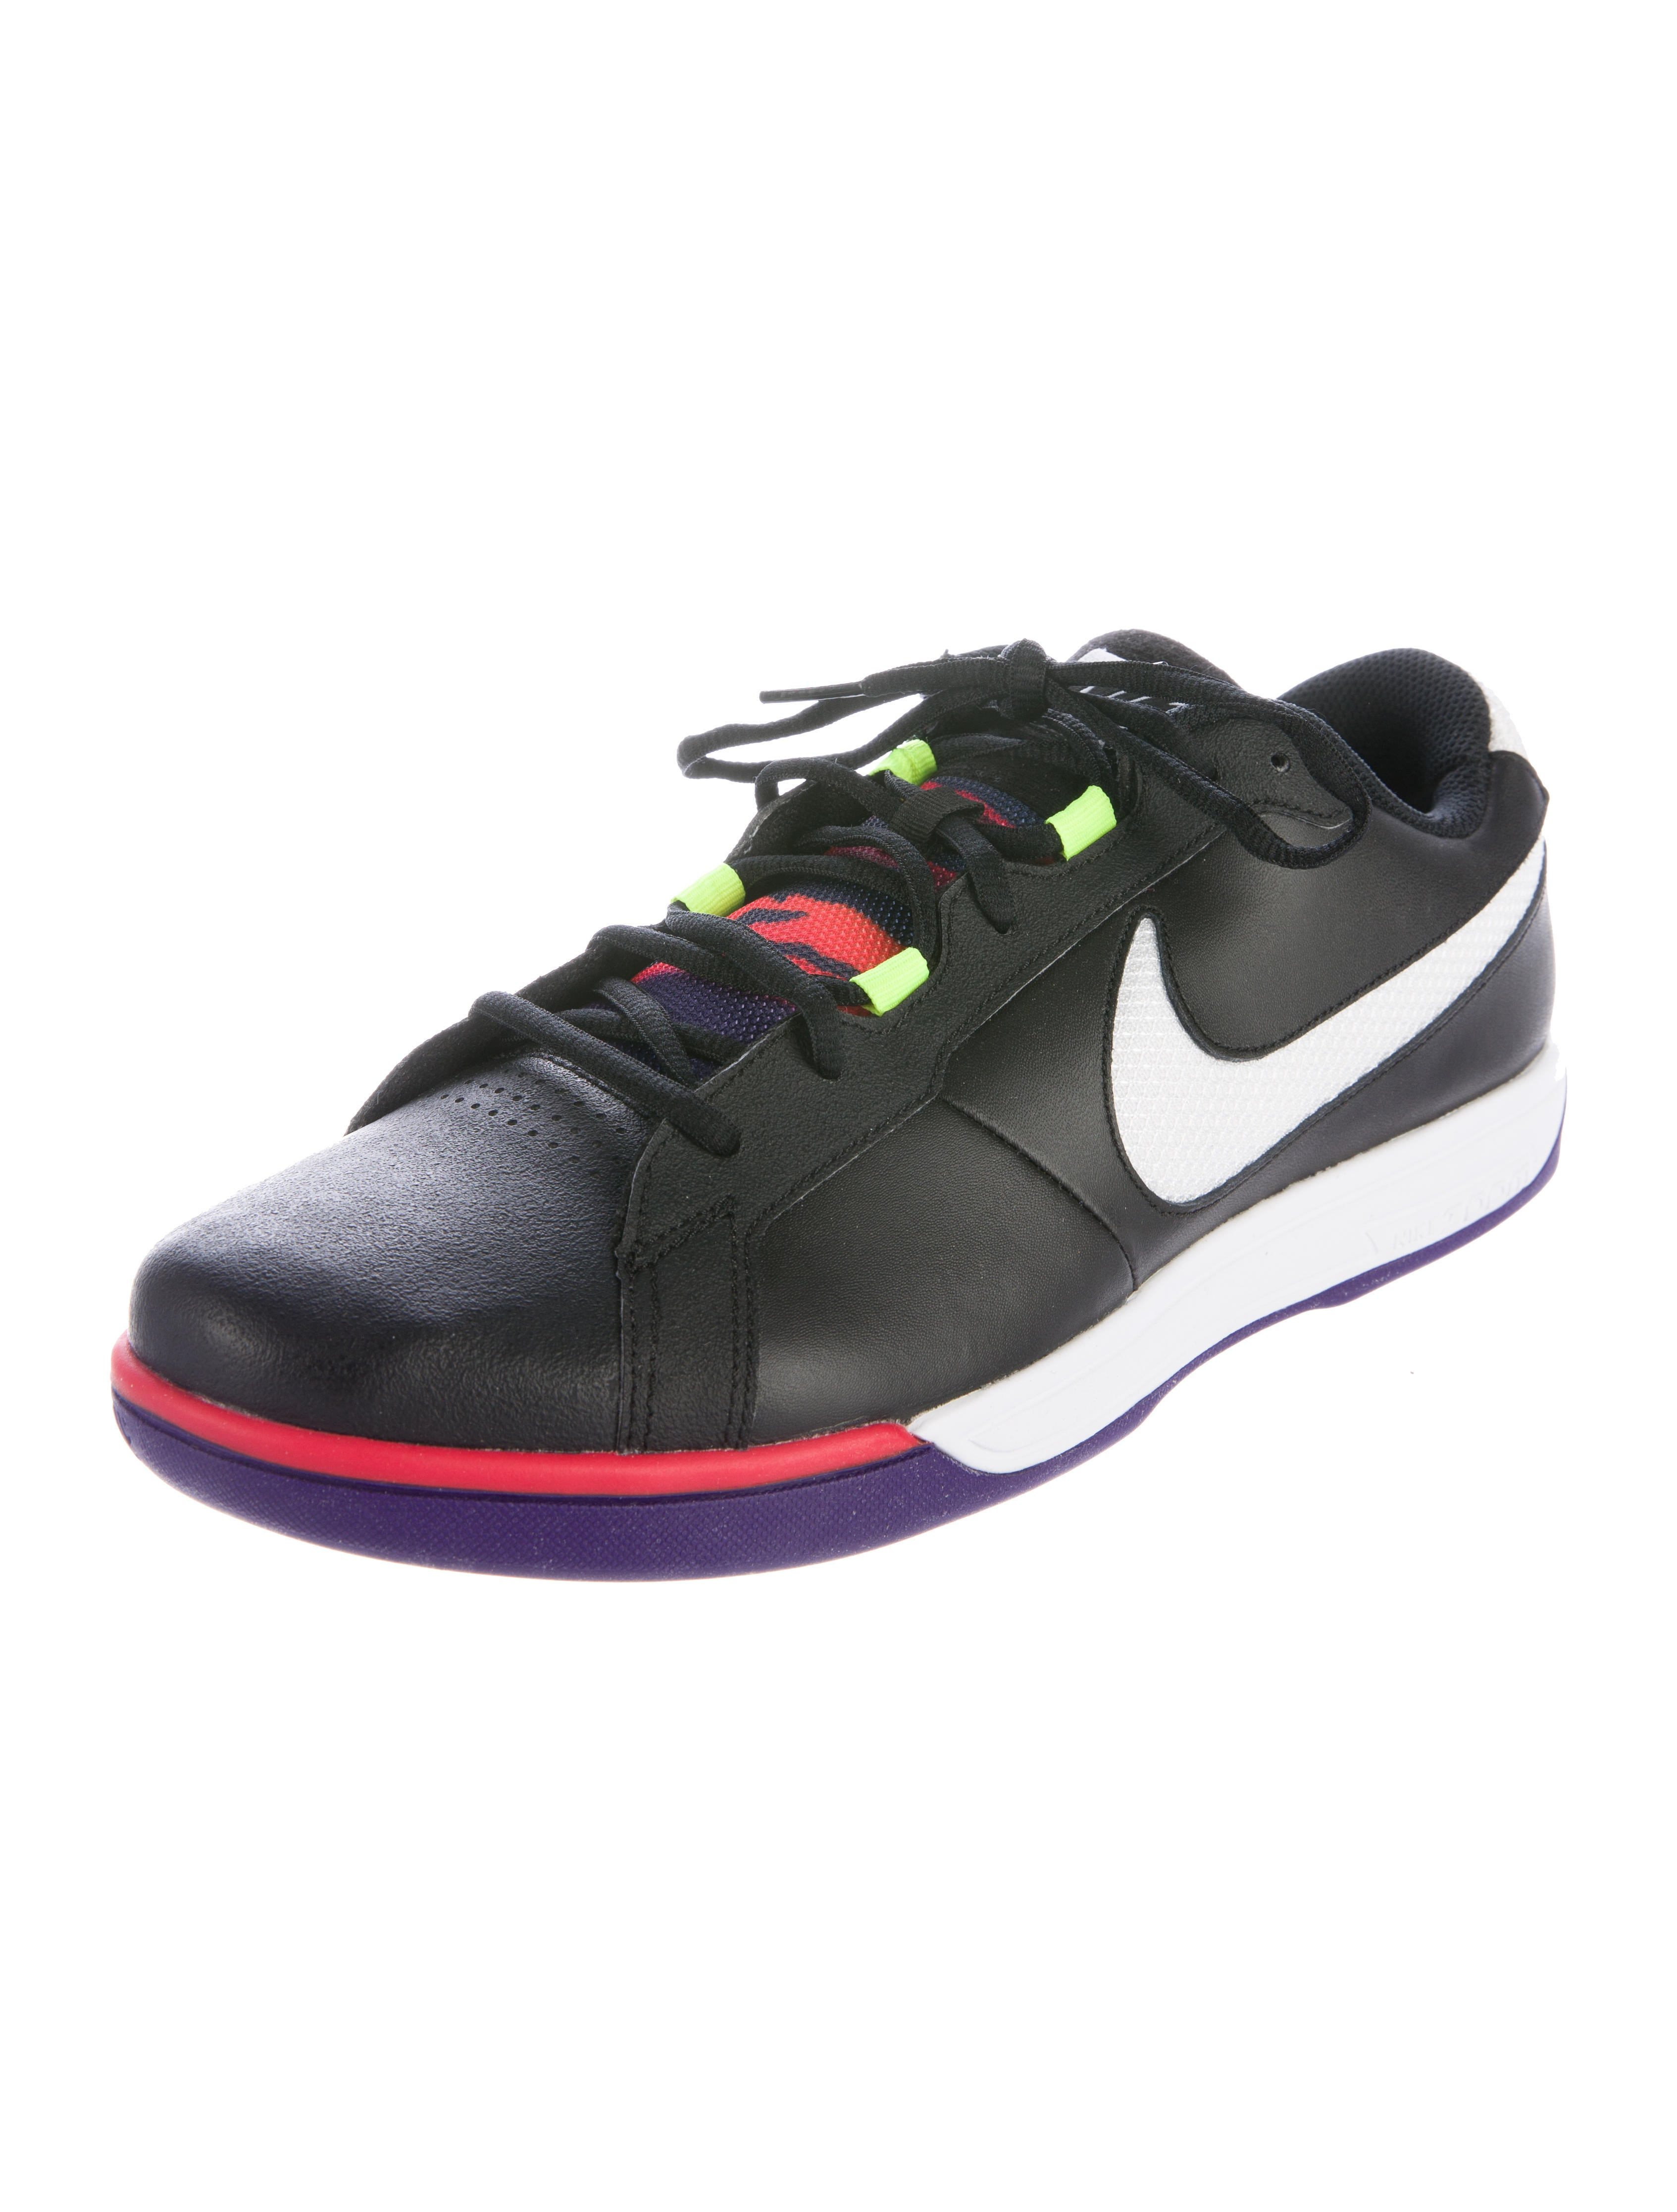 Tennis Shoes With Toes Nike